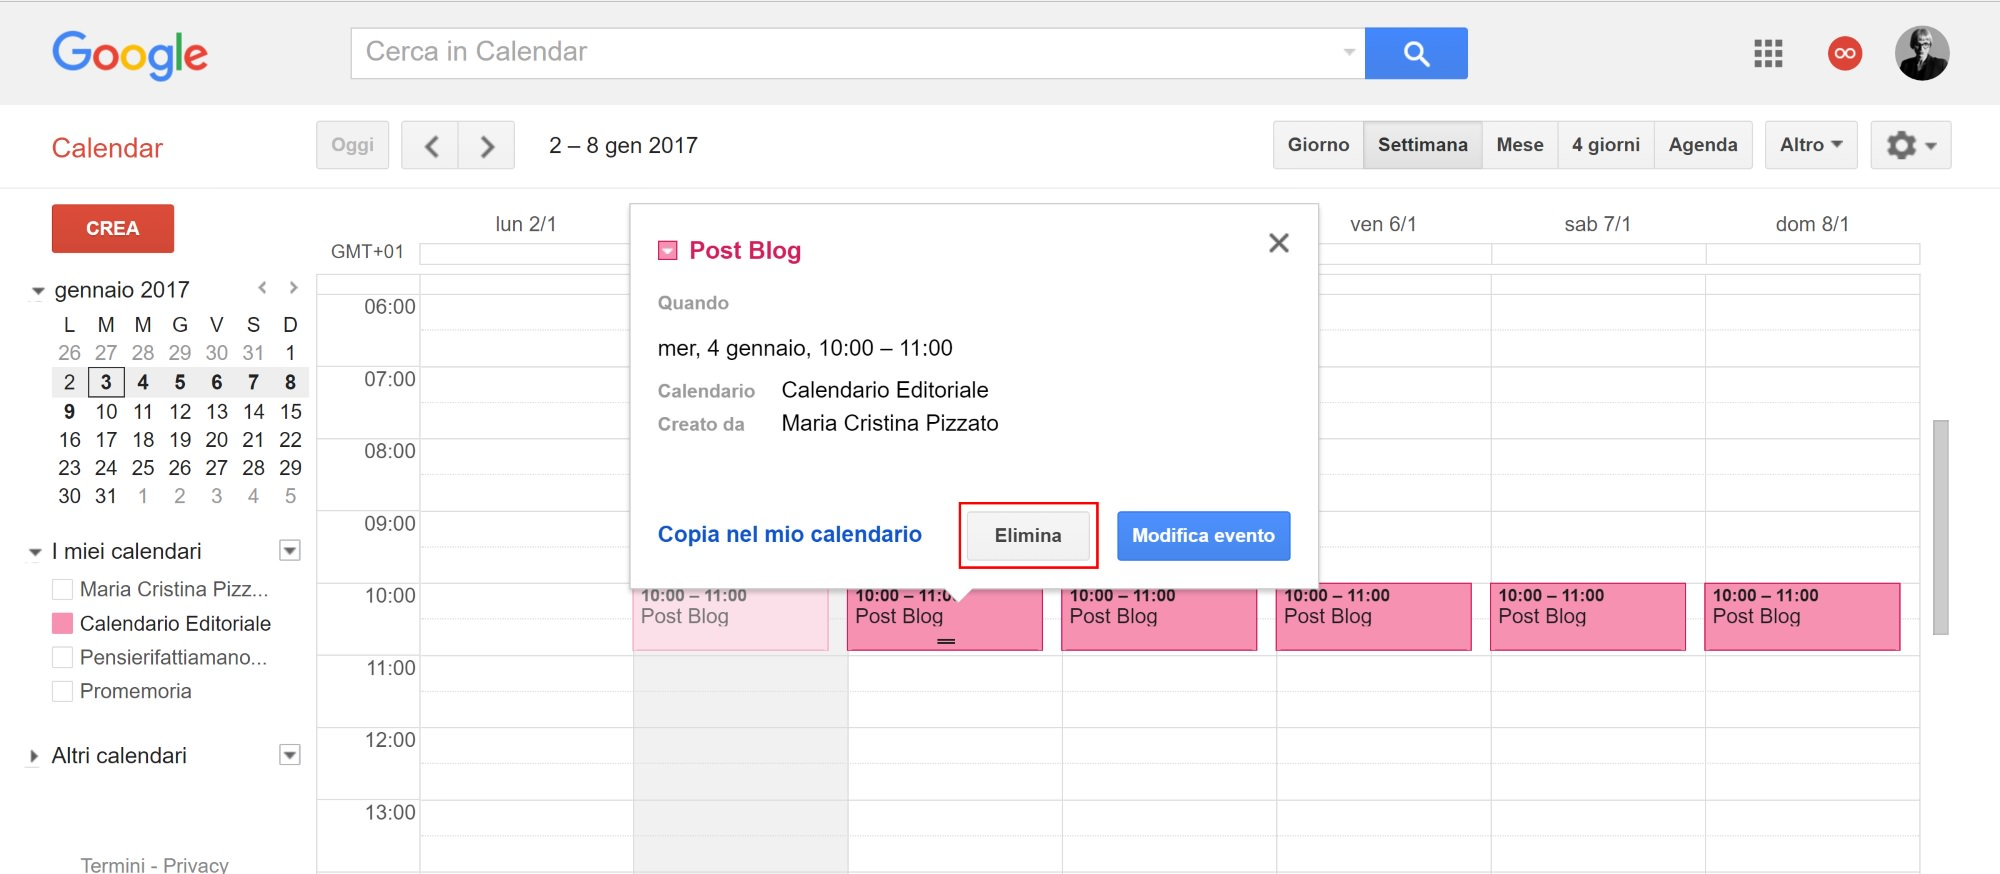 Fare Un Calendario Con Excel.Creare Un Calendario Editoriale Con Google Calendar Free